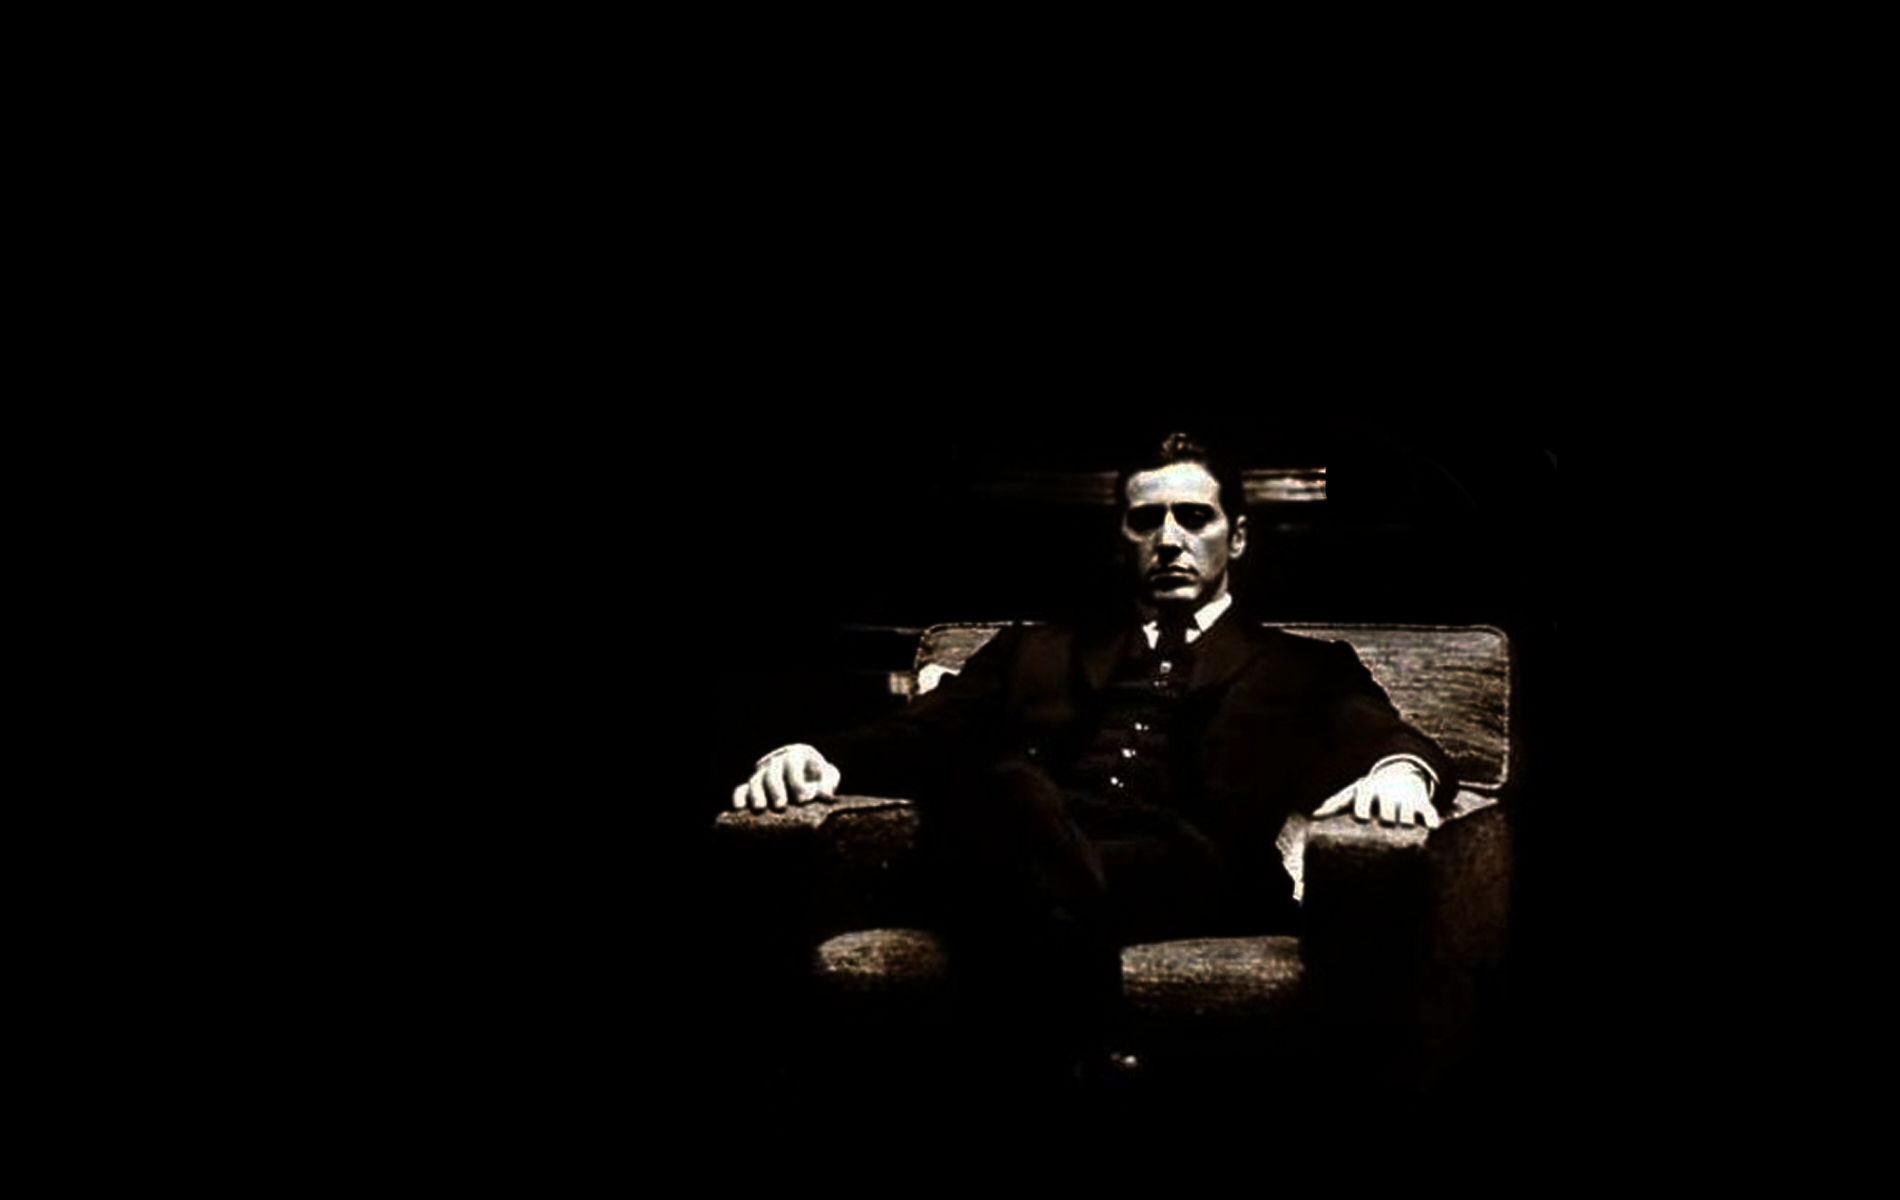 The Godfather Computer Wallpapers Desktop Backgrounds 1440x900 Id